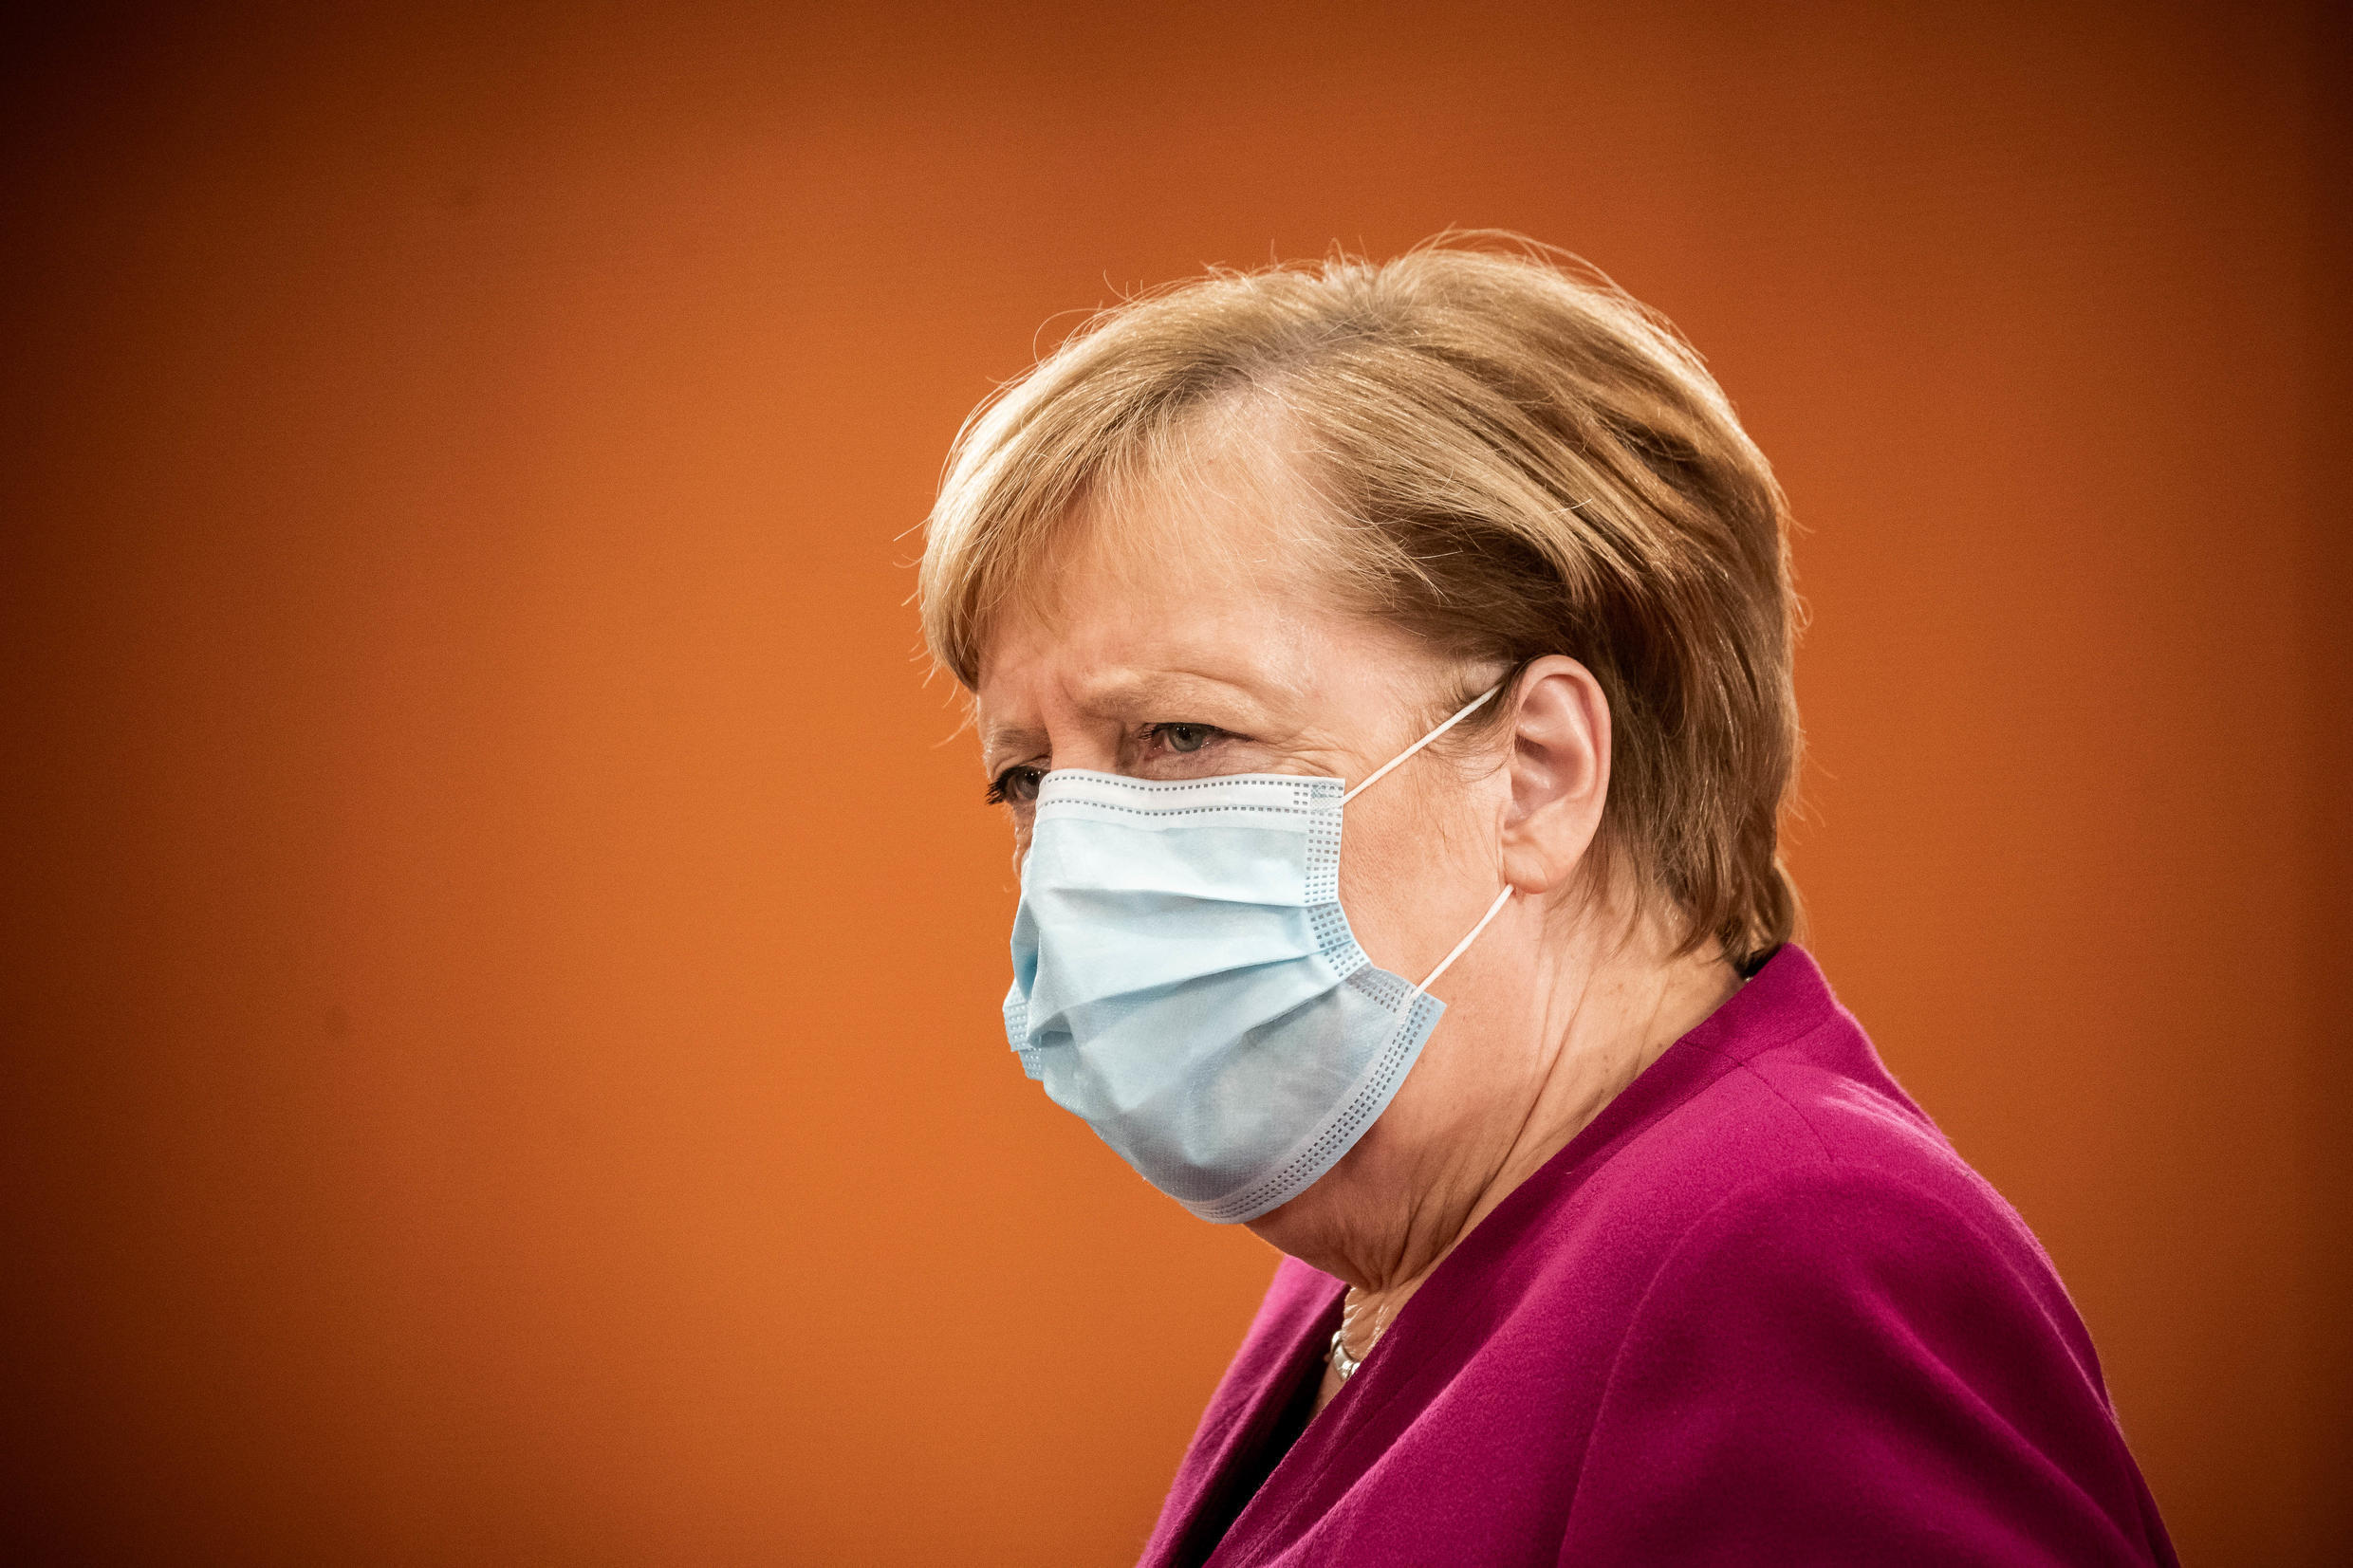 German Chancellor Angela Merkel meets with the leaders of federal states to discuss new restrictions to curb the spread of Covid-19, 14 October 2020